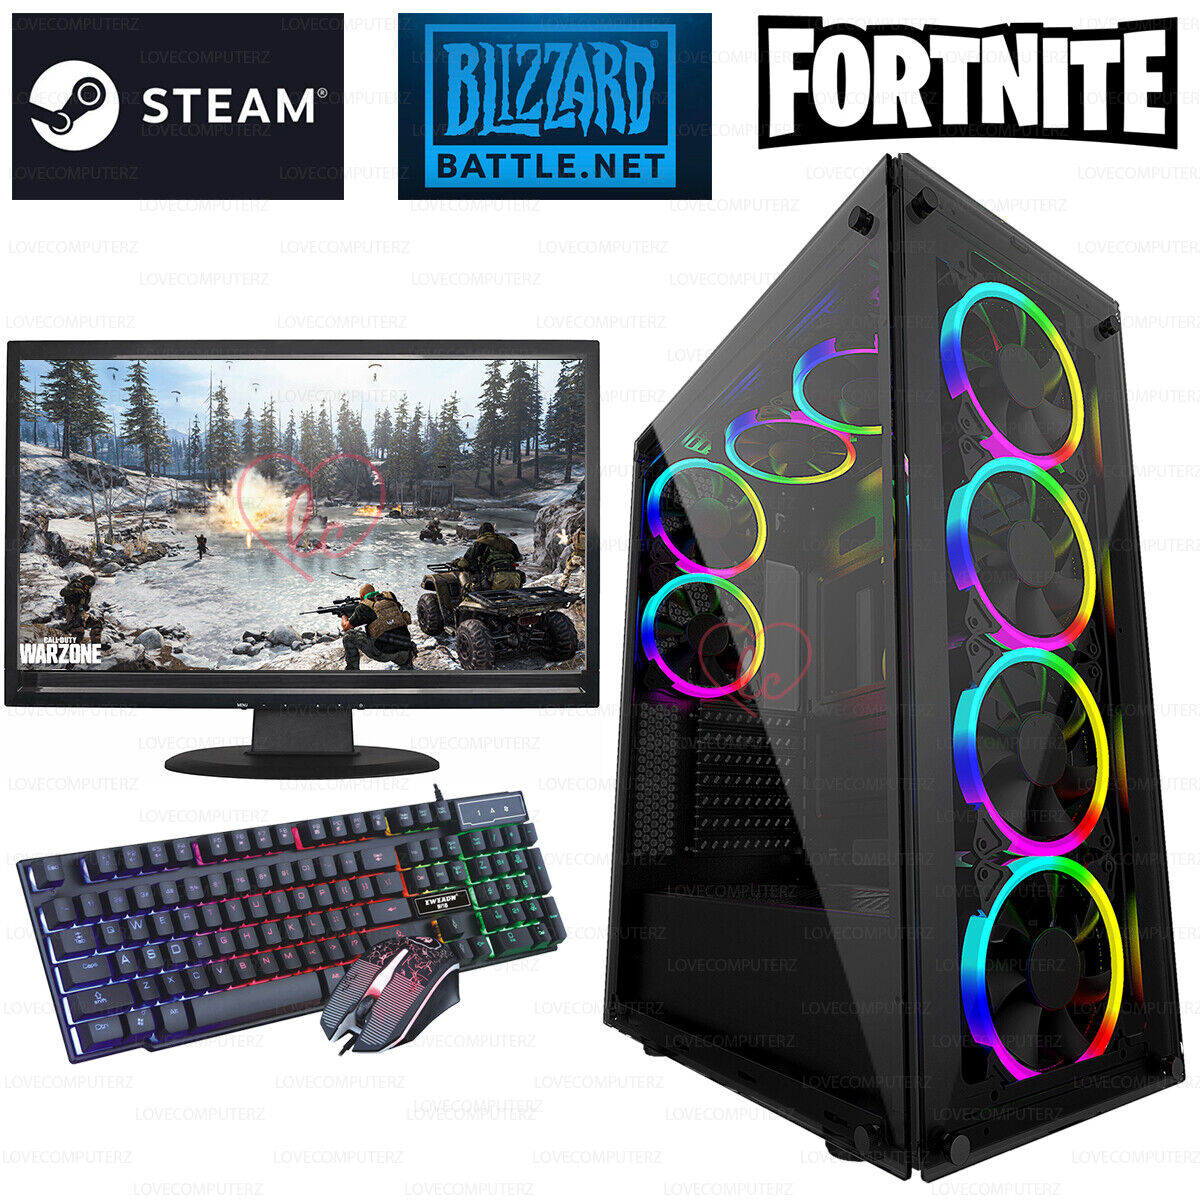 Computer Games - FAST Intel Core i5 Gaming PC Computer 16GB RAM 1TB HDD Windows 10 GT 710 2GB